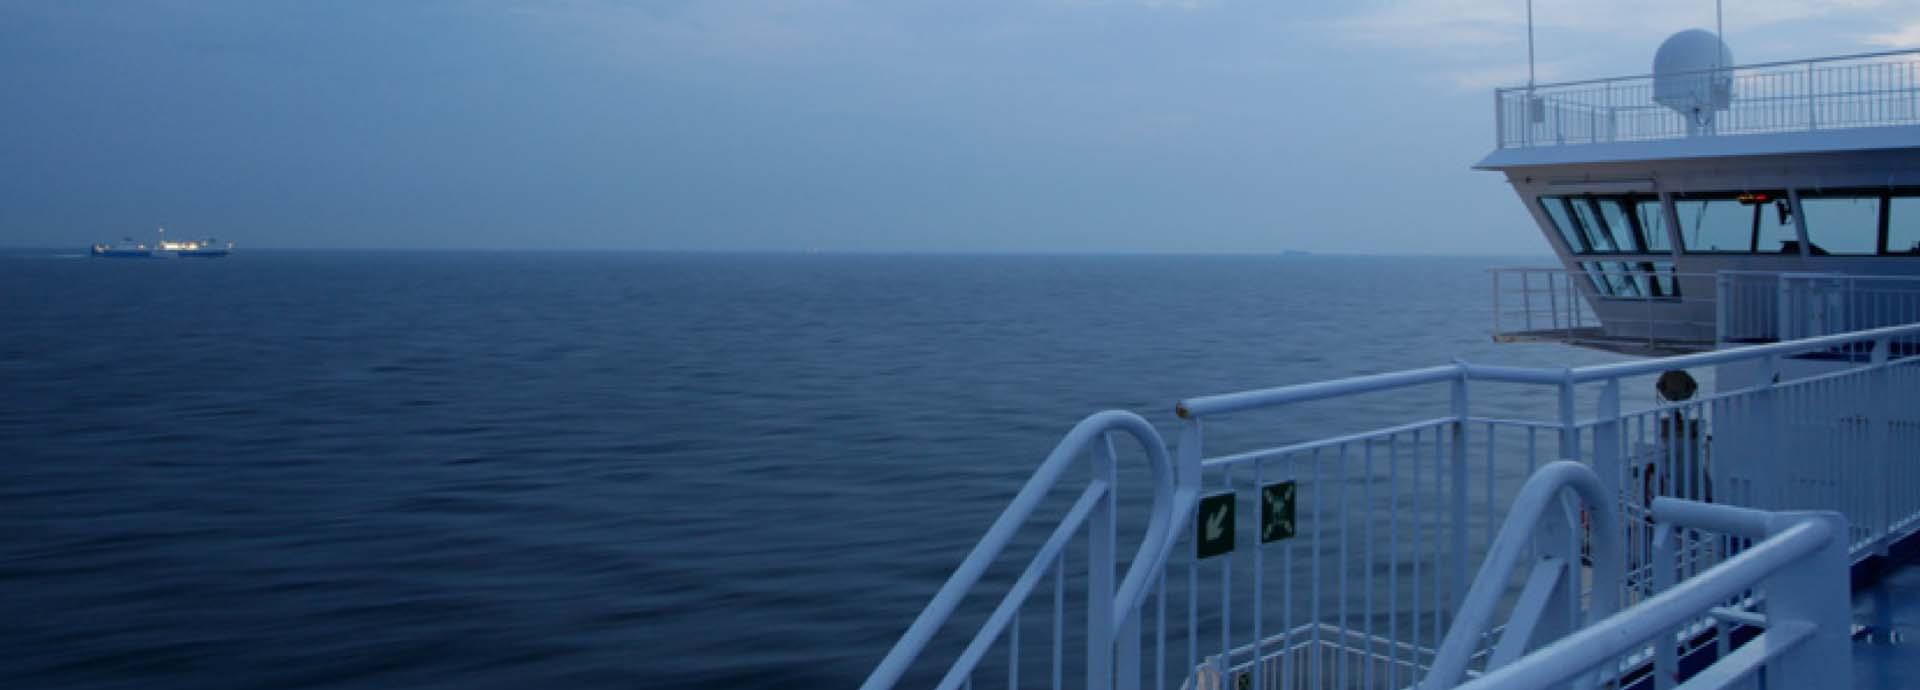 A clean environment Towards zero-emission shipping banner